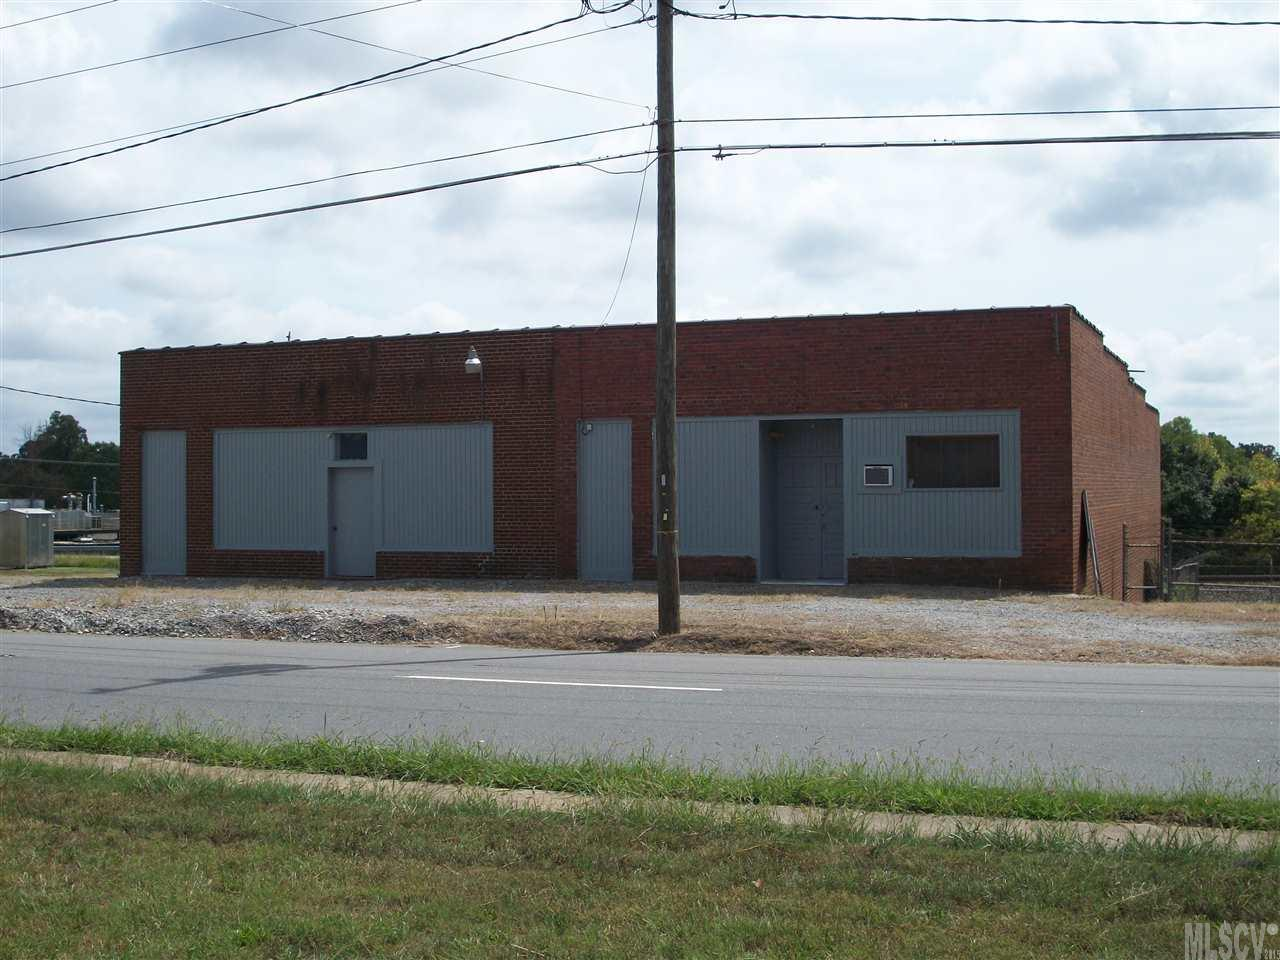 Commercial Property for Sale, ListingId:35299050, location: 1122 HIGHLAND AVE Hickory 28601